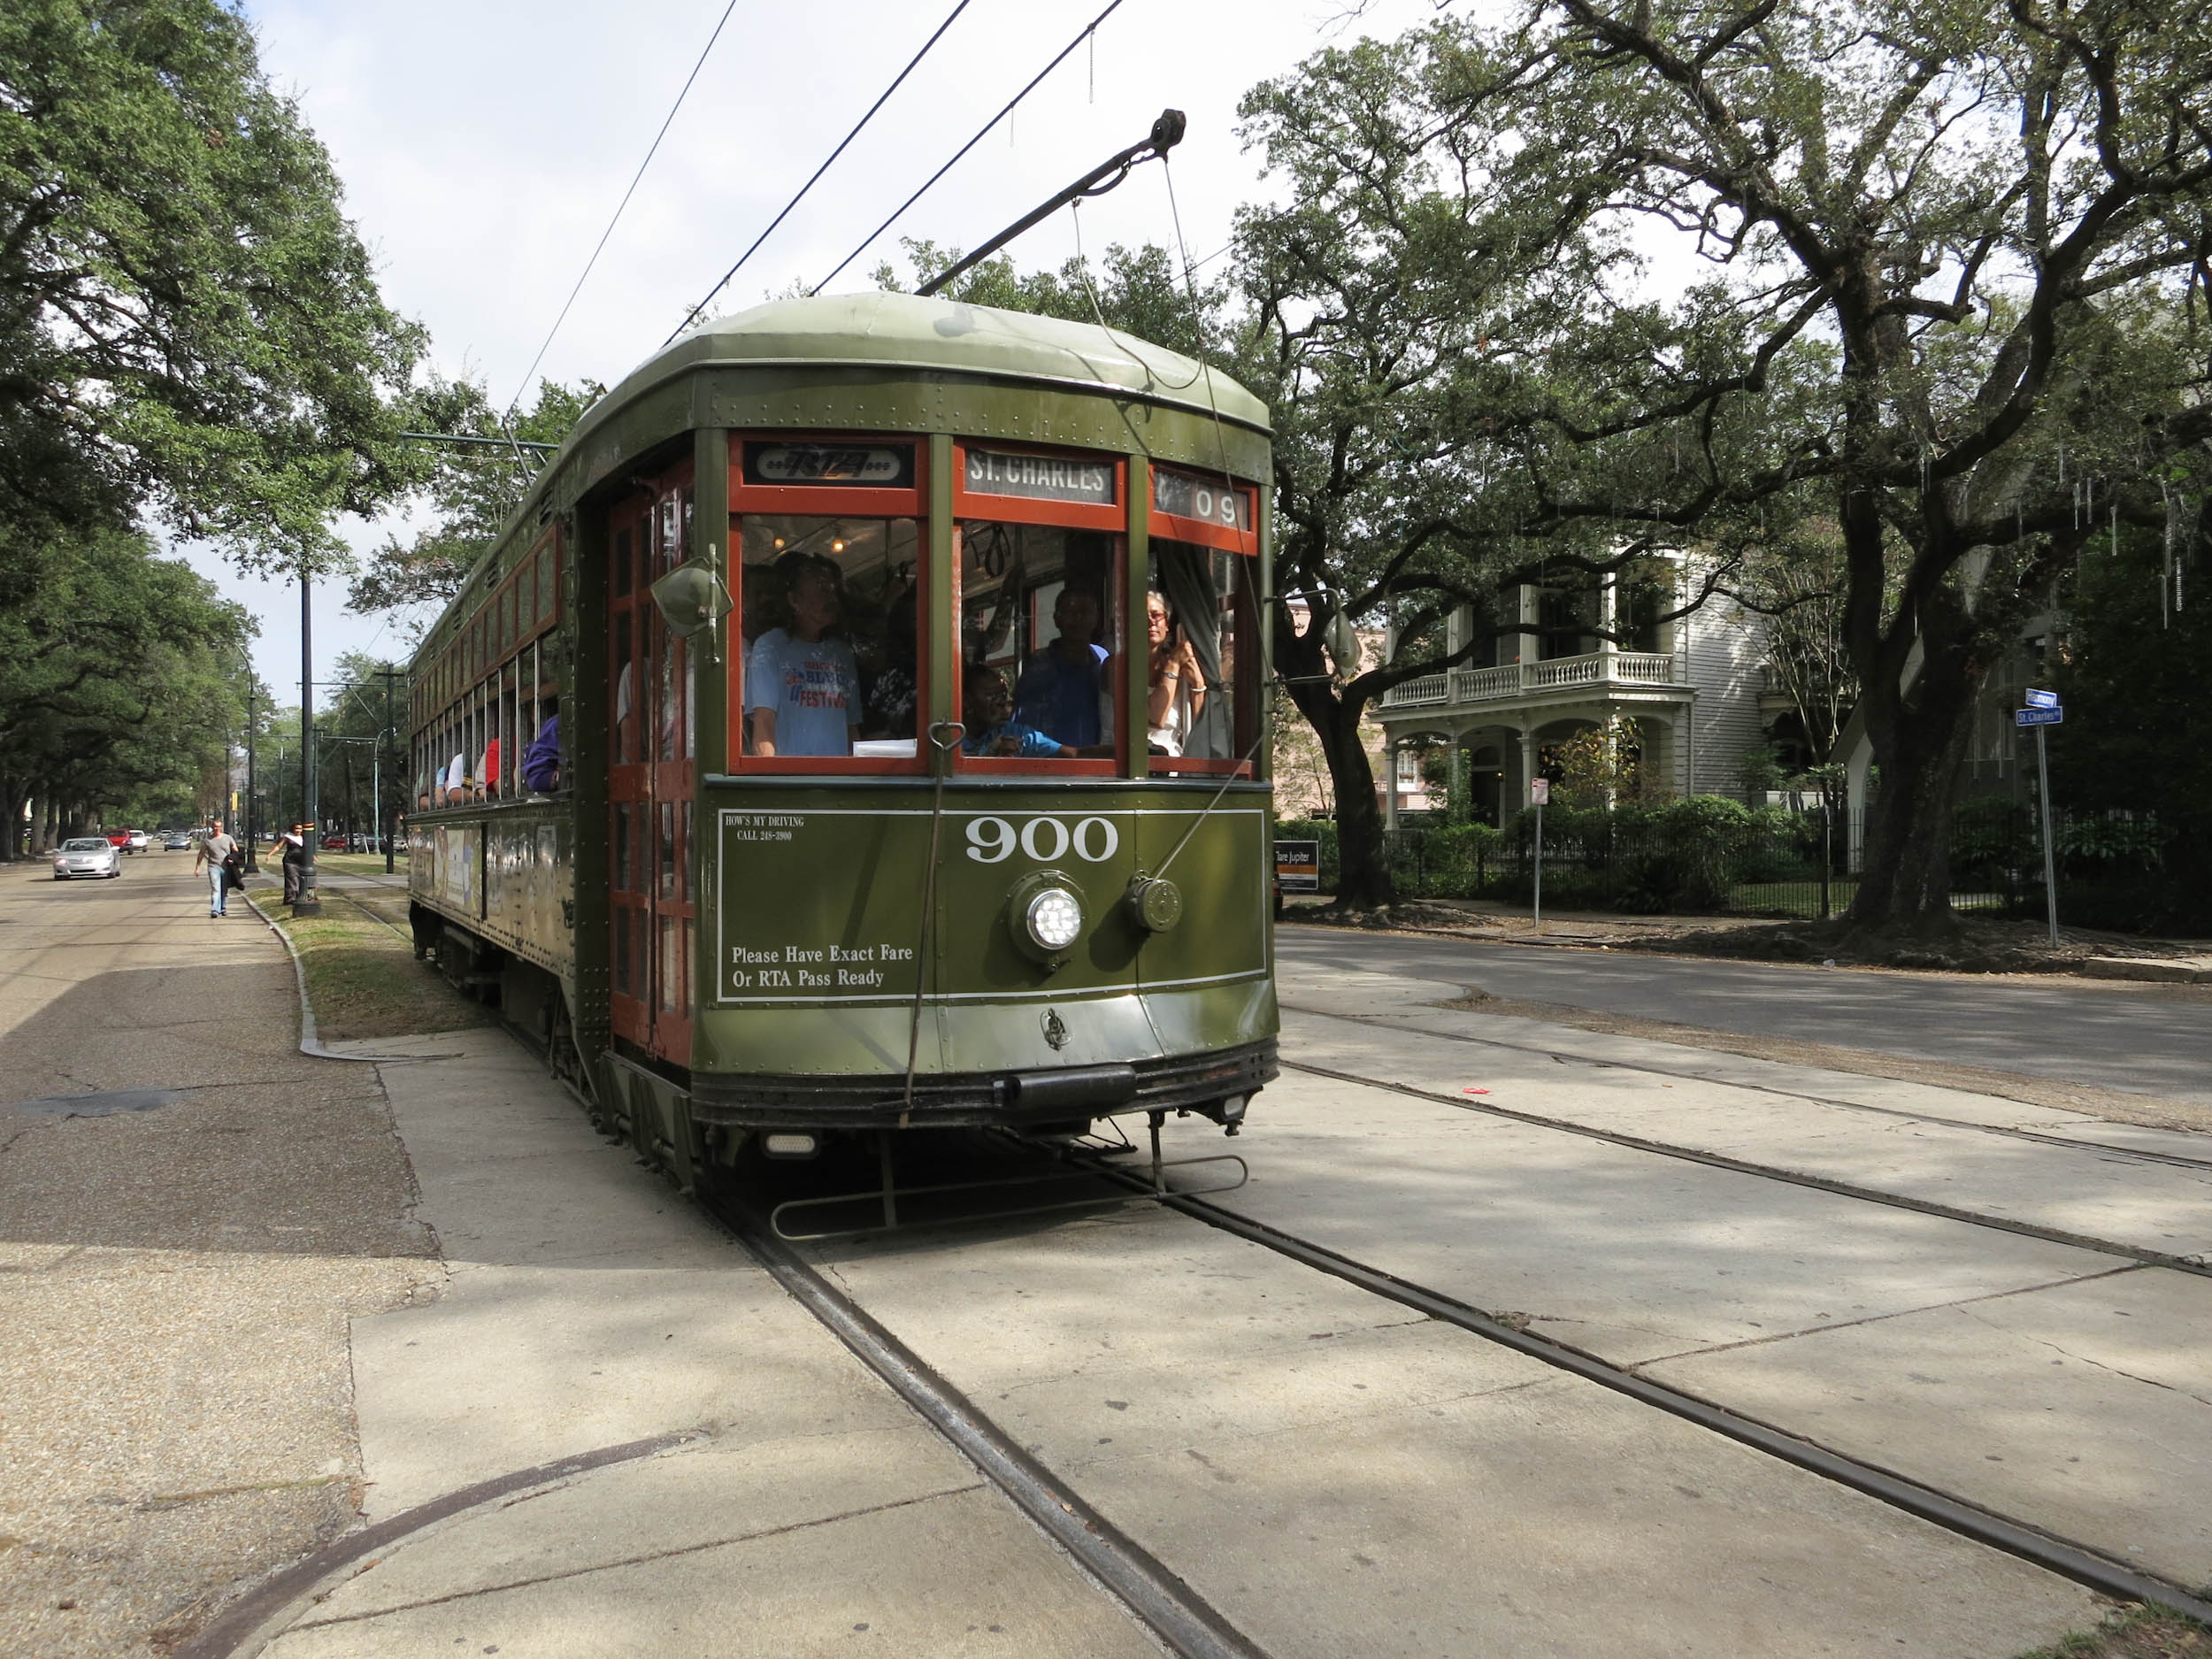 New Orleans Street Cars: This New Orleans Streetcar Is The Oldest In America